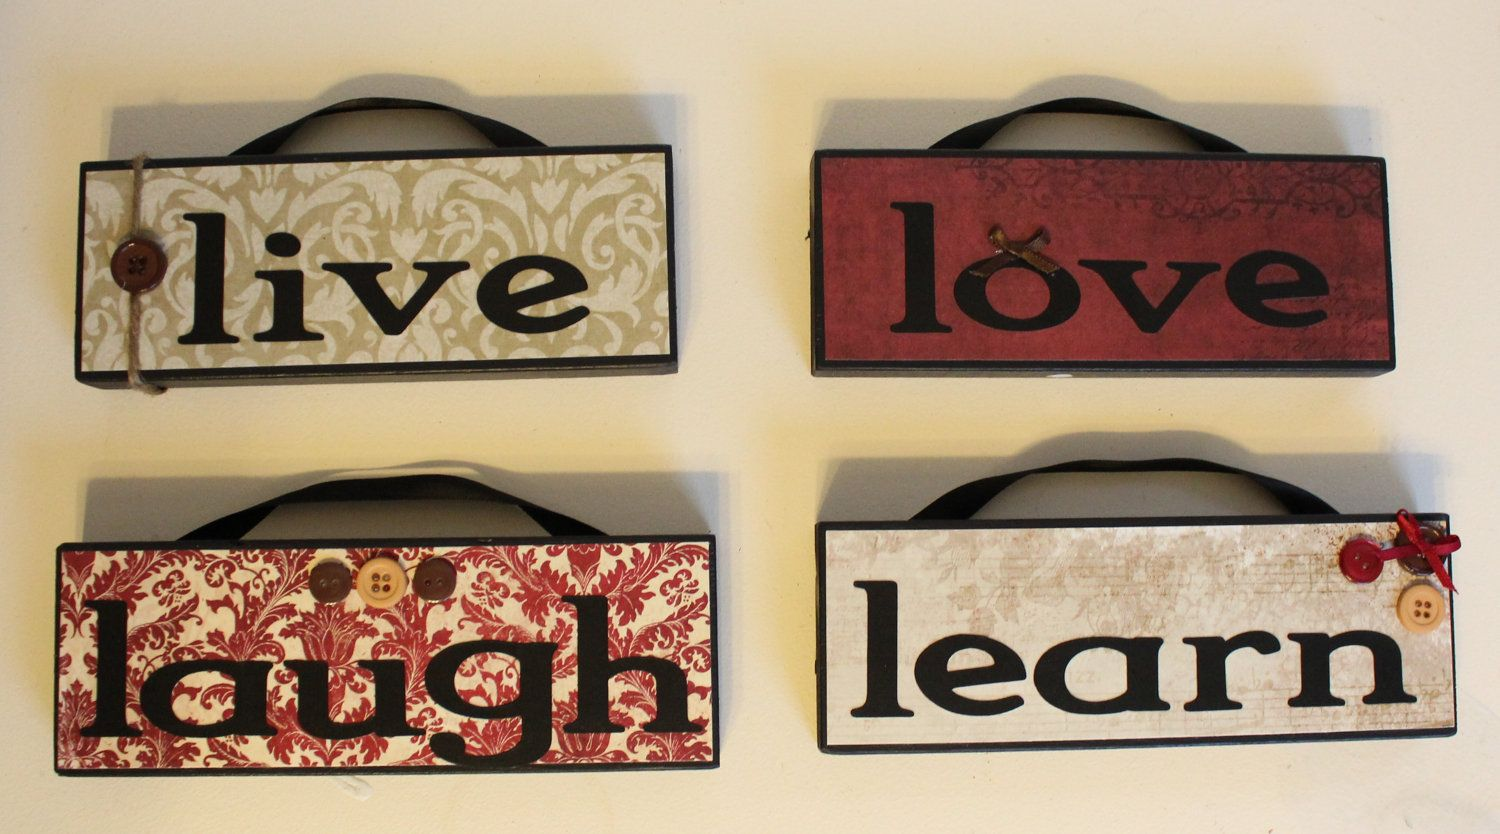 Live Laugh Love Learn Hanging Wood Signs Home Decor